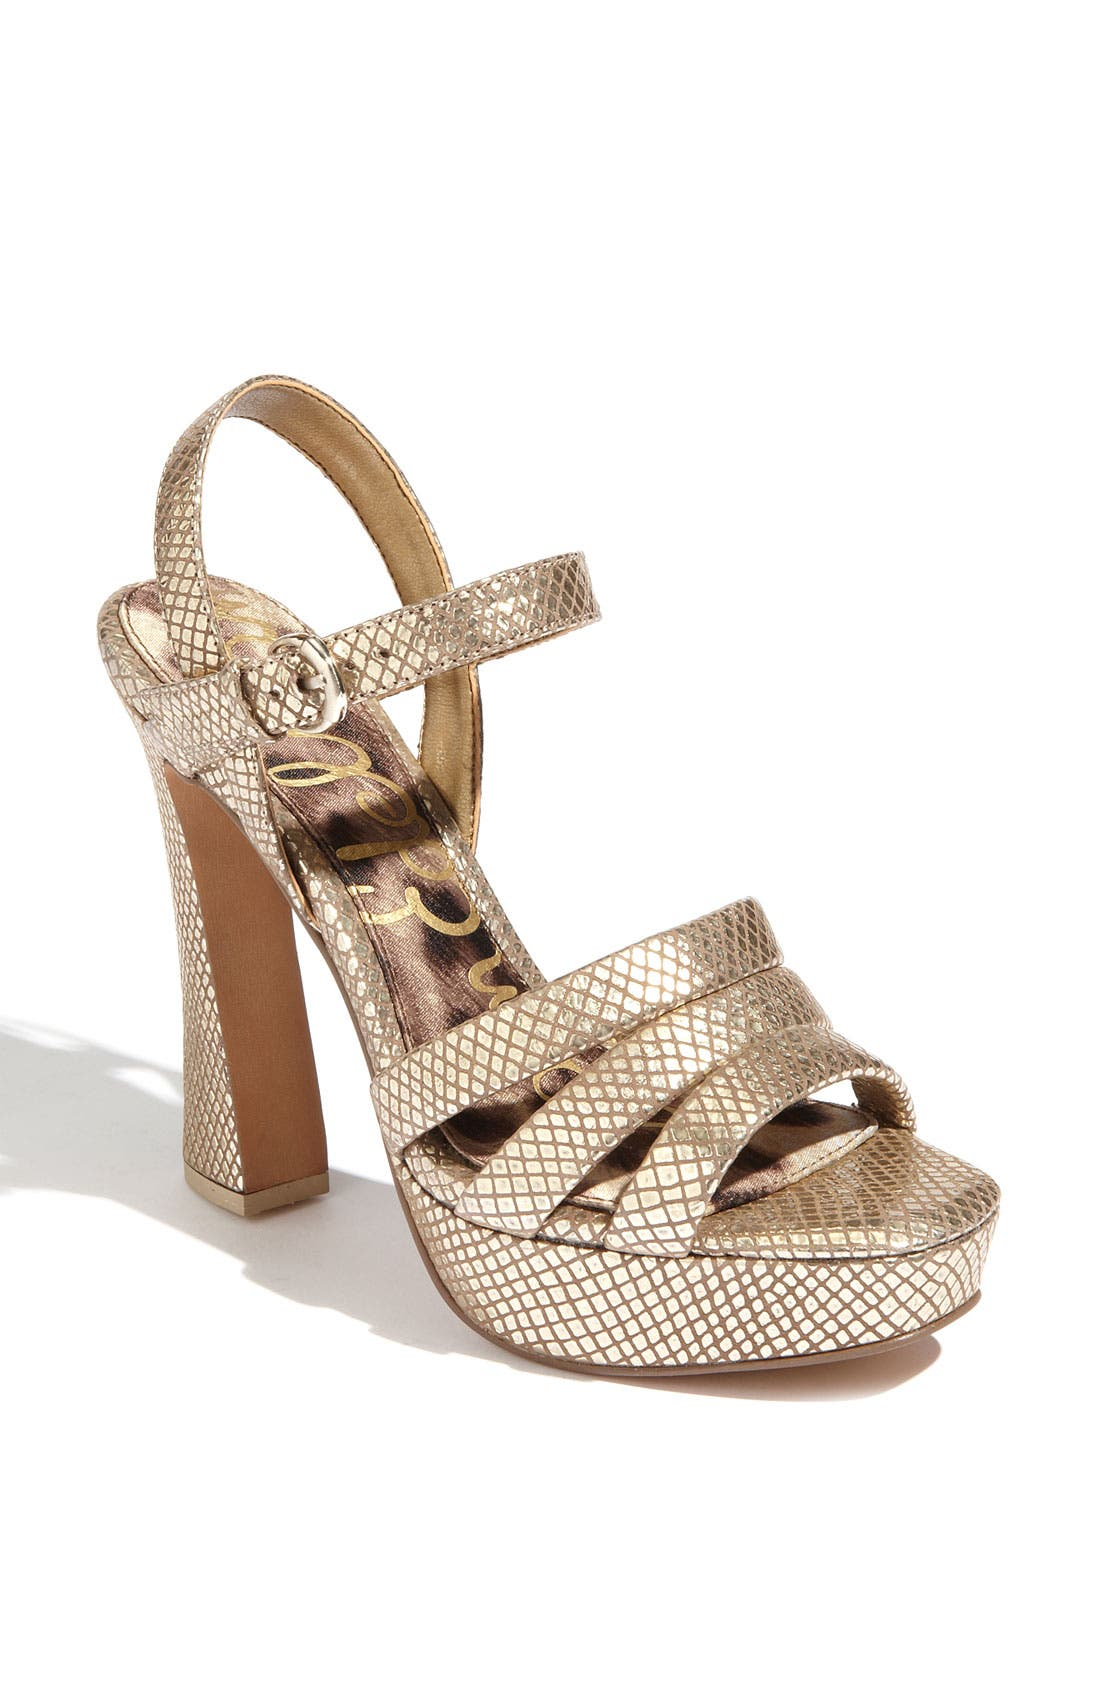 Alternate Image 1 Selected - Sam Edelman 'Taryn' Sandal